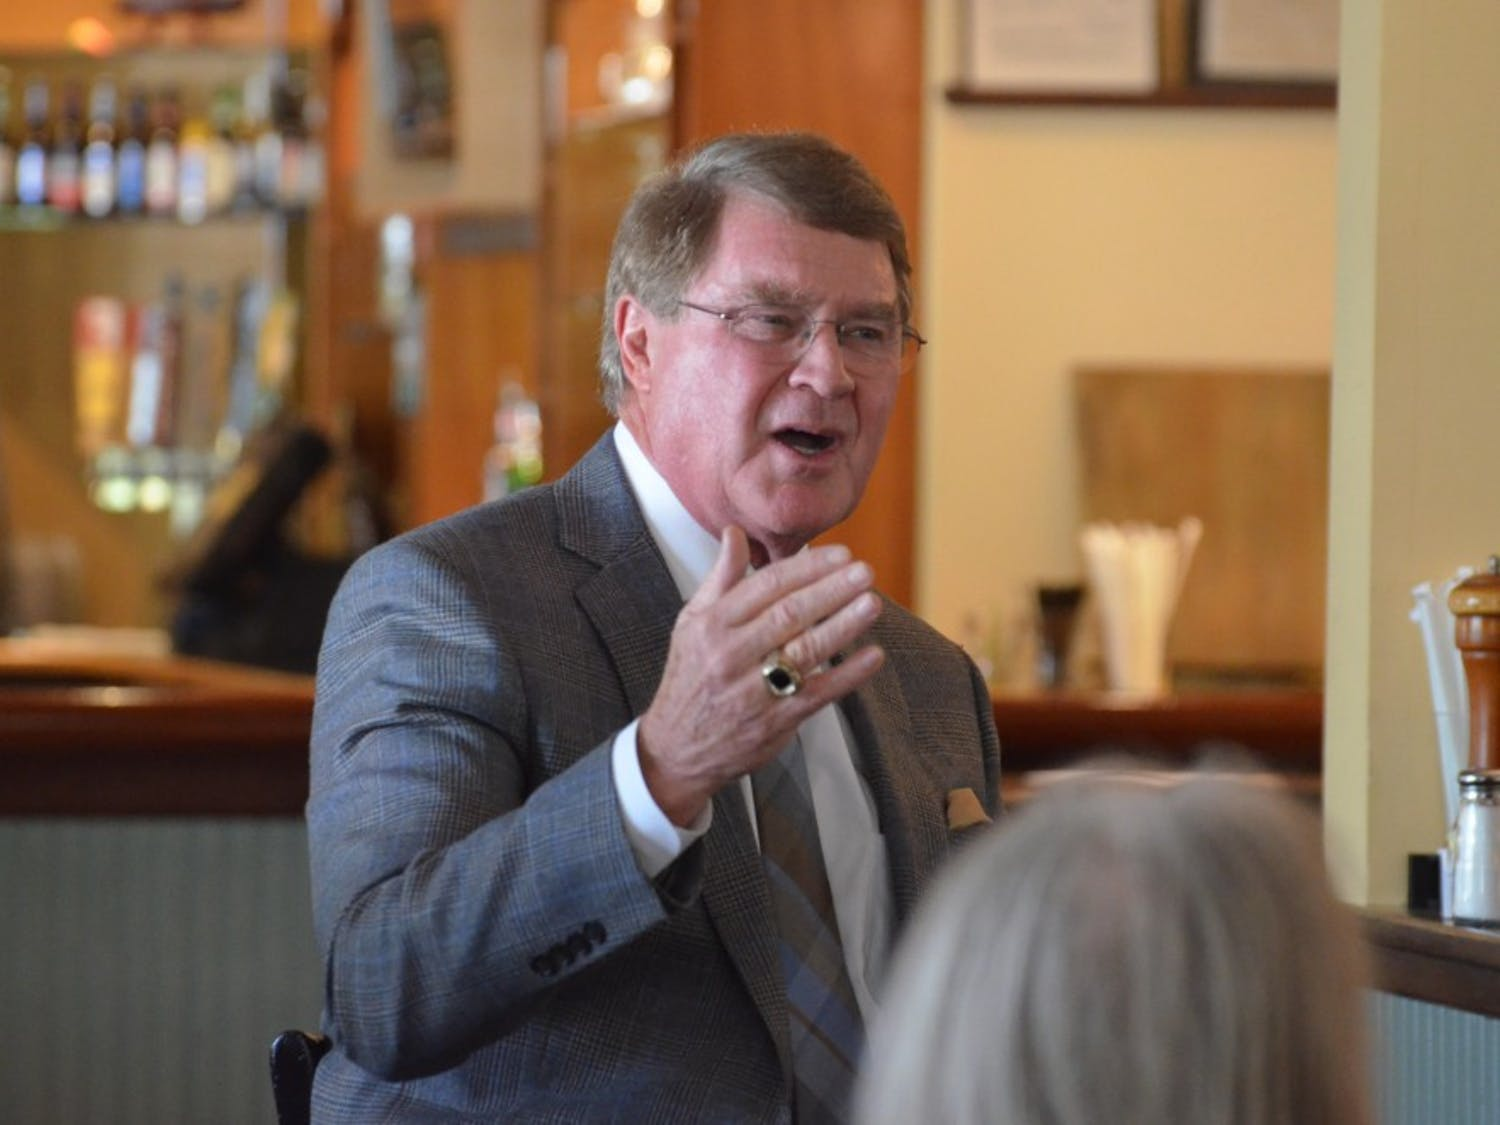 ACC Commissioner John Swofford speaks to members of the Chapel Hill Sports Club at Squid's Restaurant, Market and Oyster Bar on Feb. 21, 2018 in Chapel Hill.